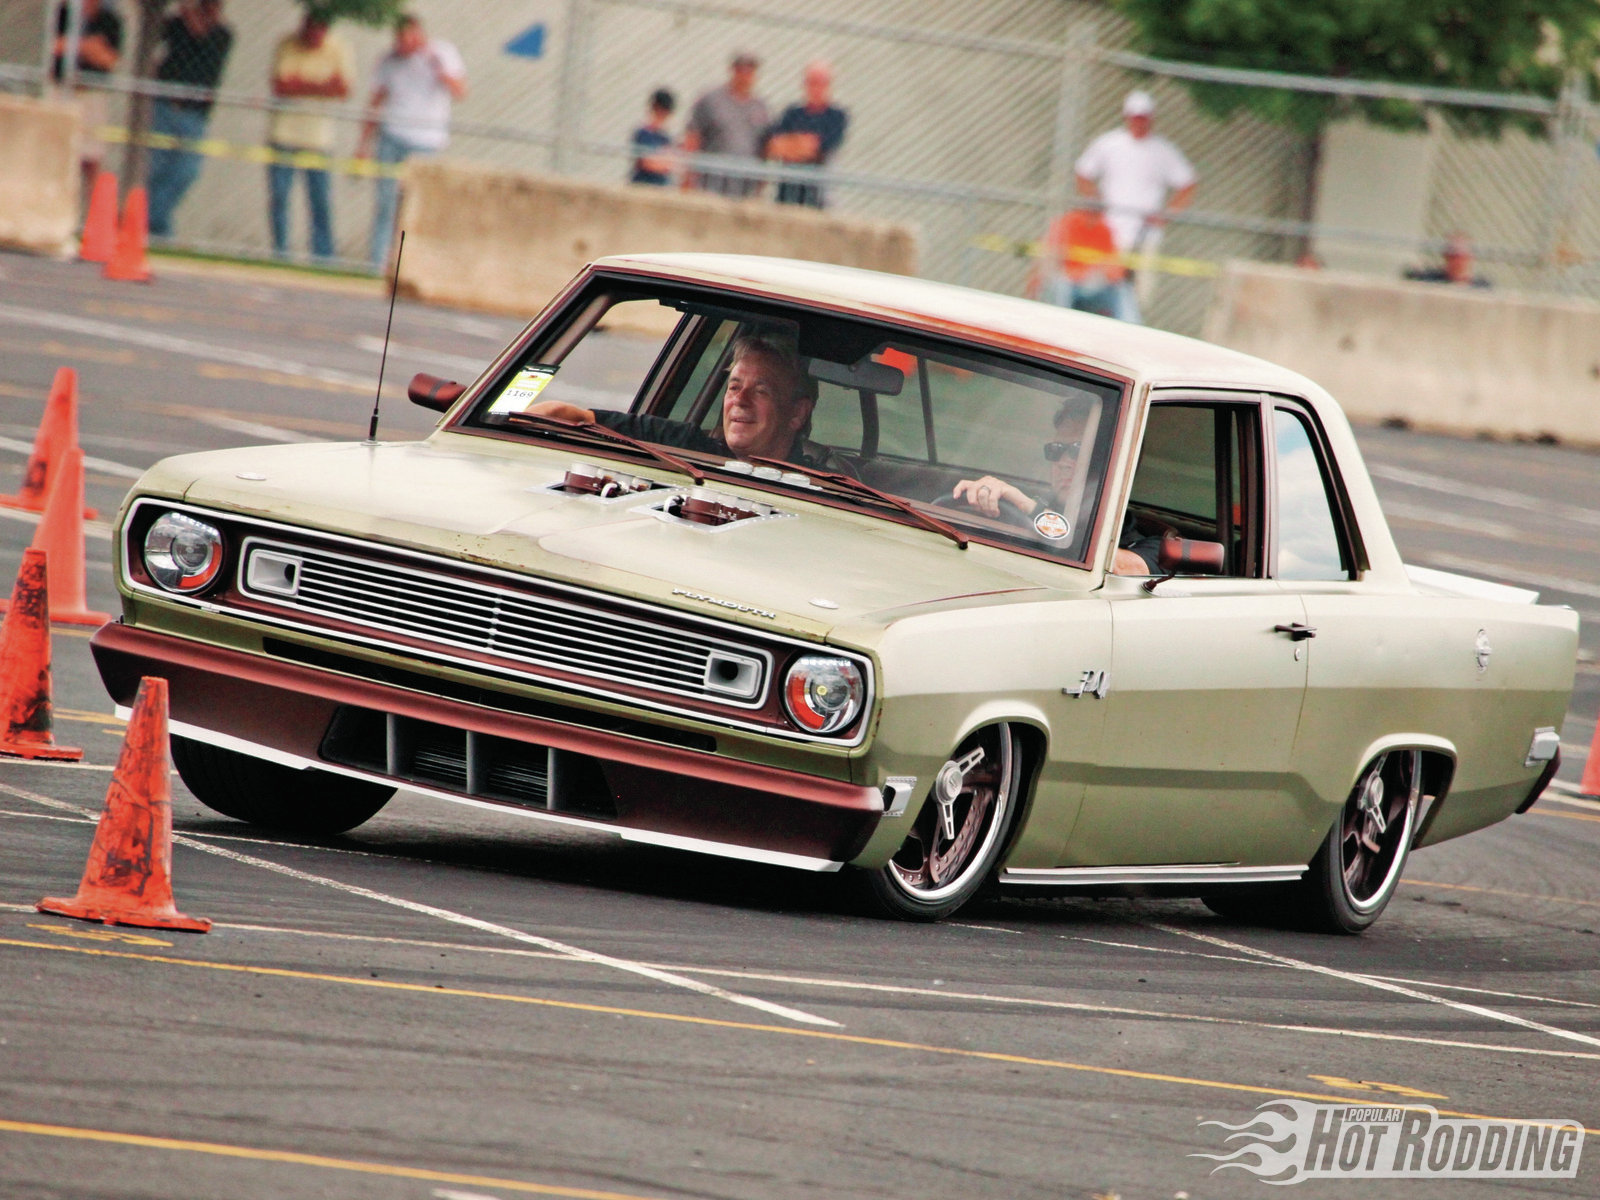 """Jesse Greening built this 1969 Plymouth Valiant for customer Don Montgomery, and it had us foaming at the mouth. Greening left the Valiant's perfect green survivor patina untouched, and built a masterpiece around it, even color-matching the surface rust spots for the bumpers, trim, and wheels. Stay tuned for more details on this """"Pissed Off"""" one!"""